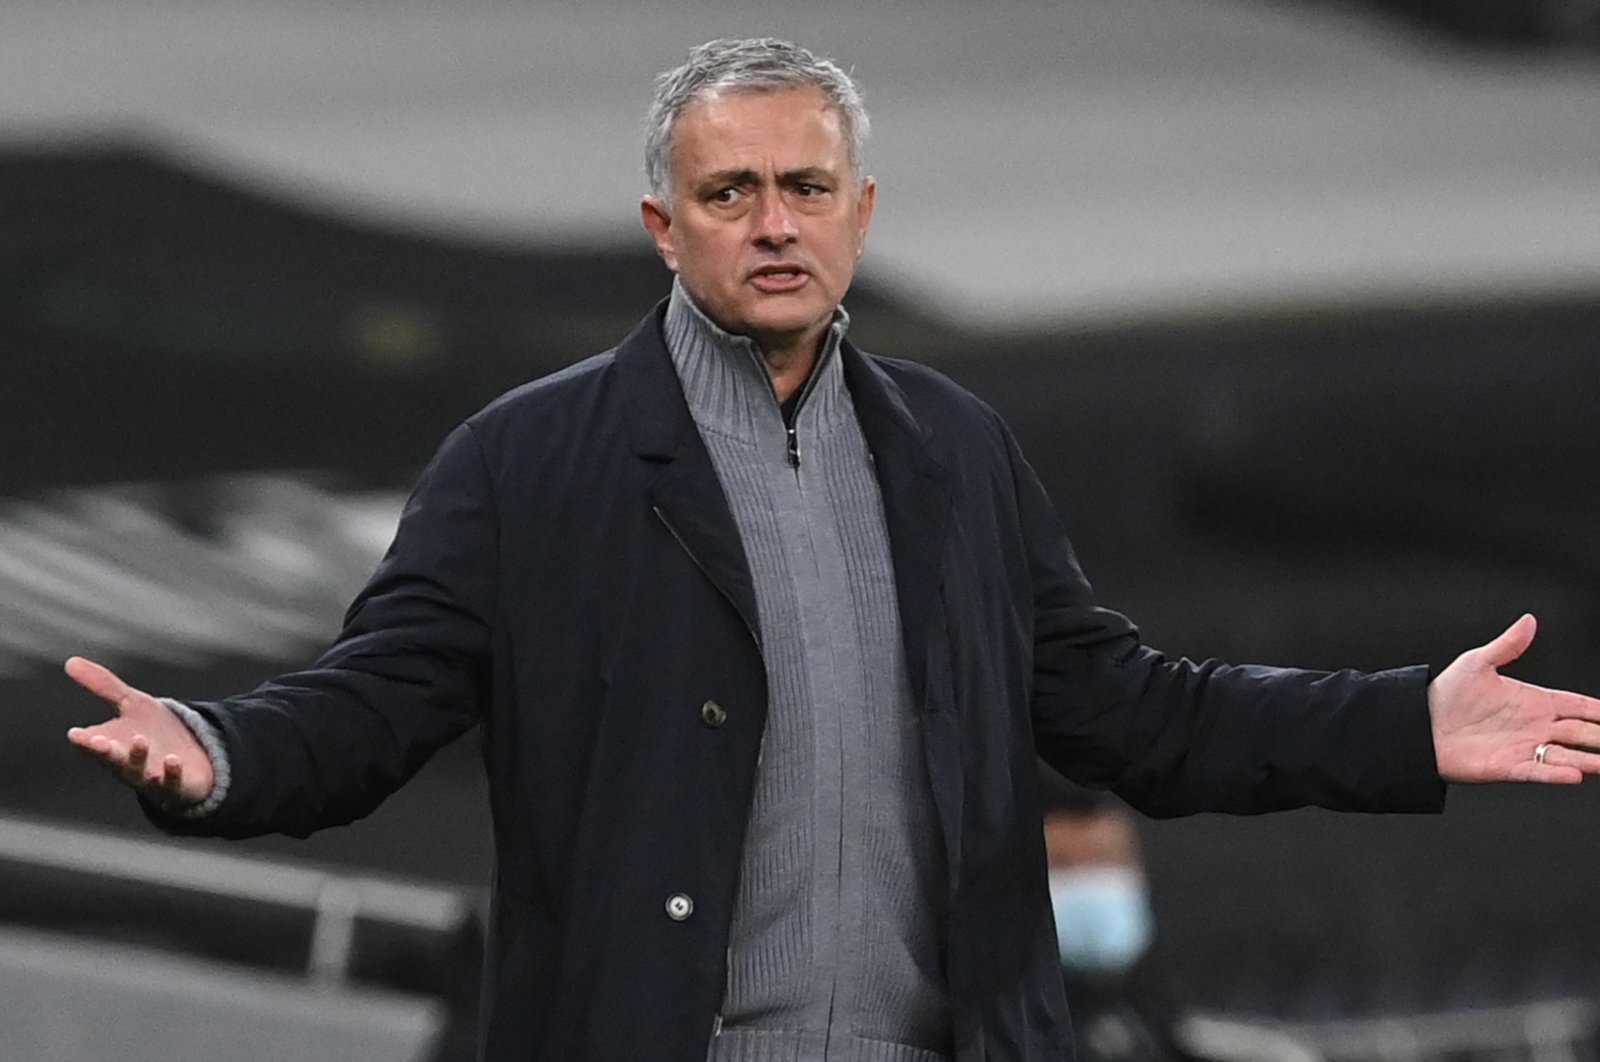 Tottenham manager Jose Mourinho reacts during the UEFA Europa League round of 16, first leg match against Dinamo Zagreb, London, Britain, March 11, 2021 (EPA Photo)